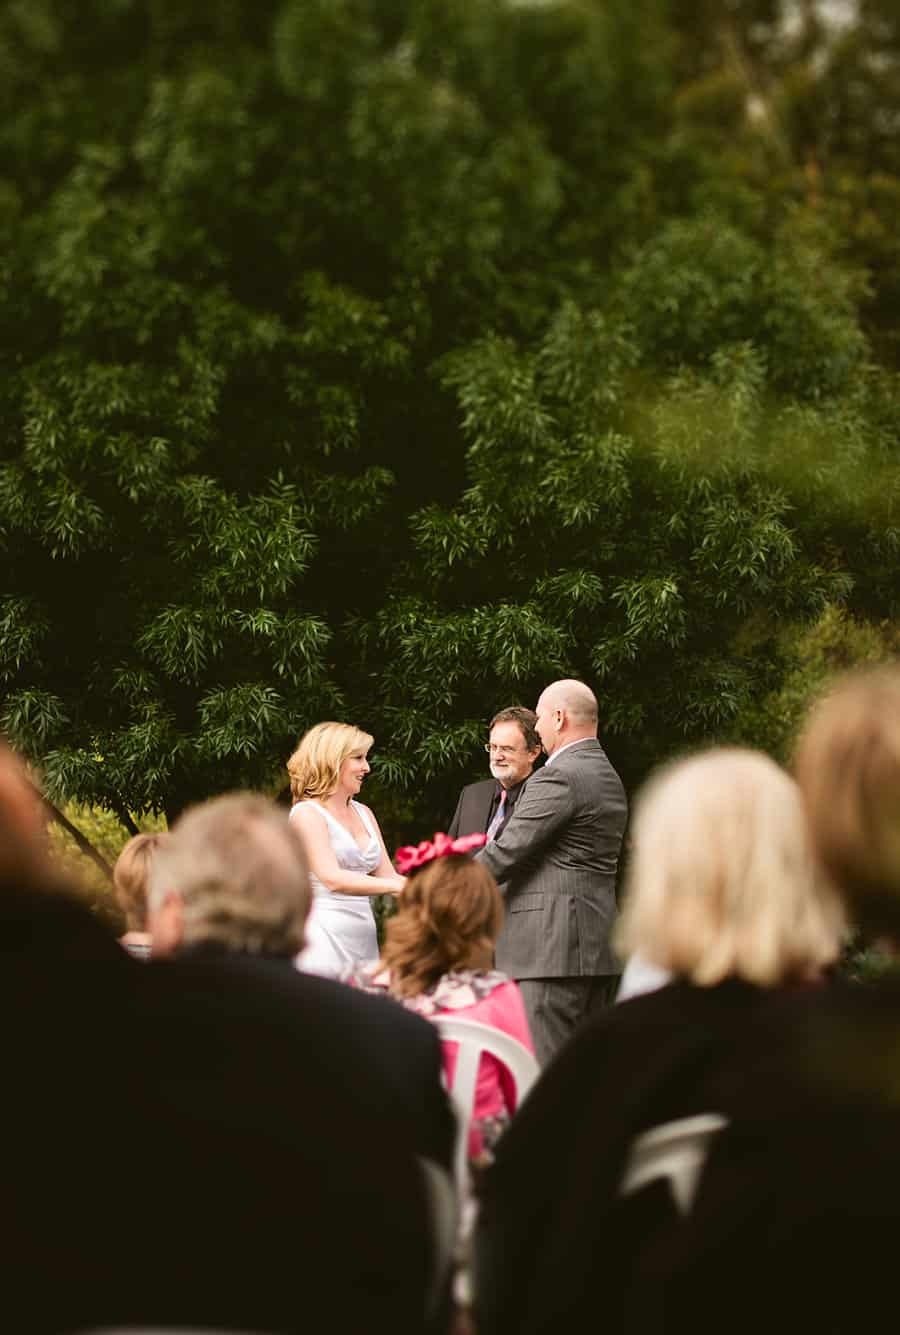 Haley & Rus Wedding - Ceremony